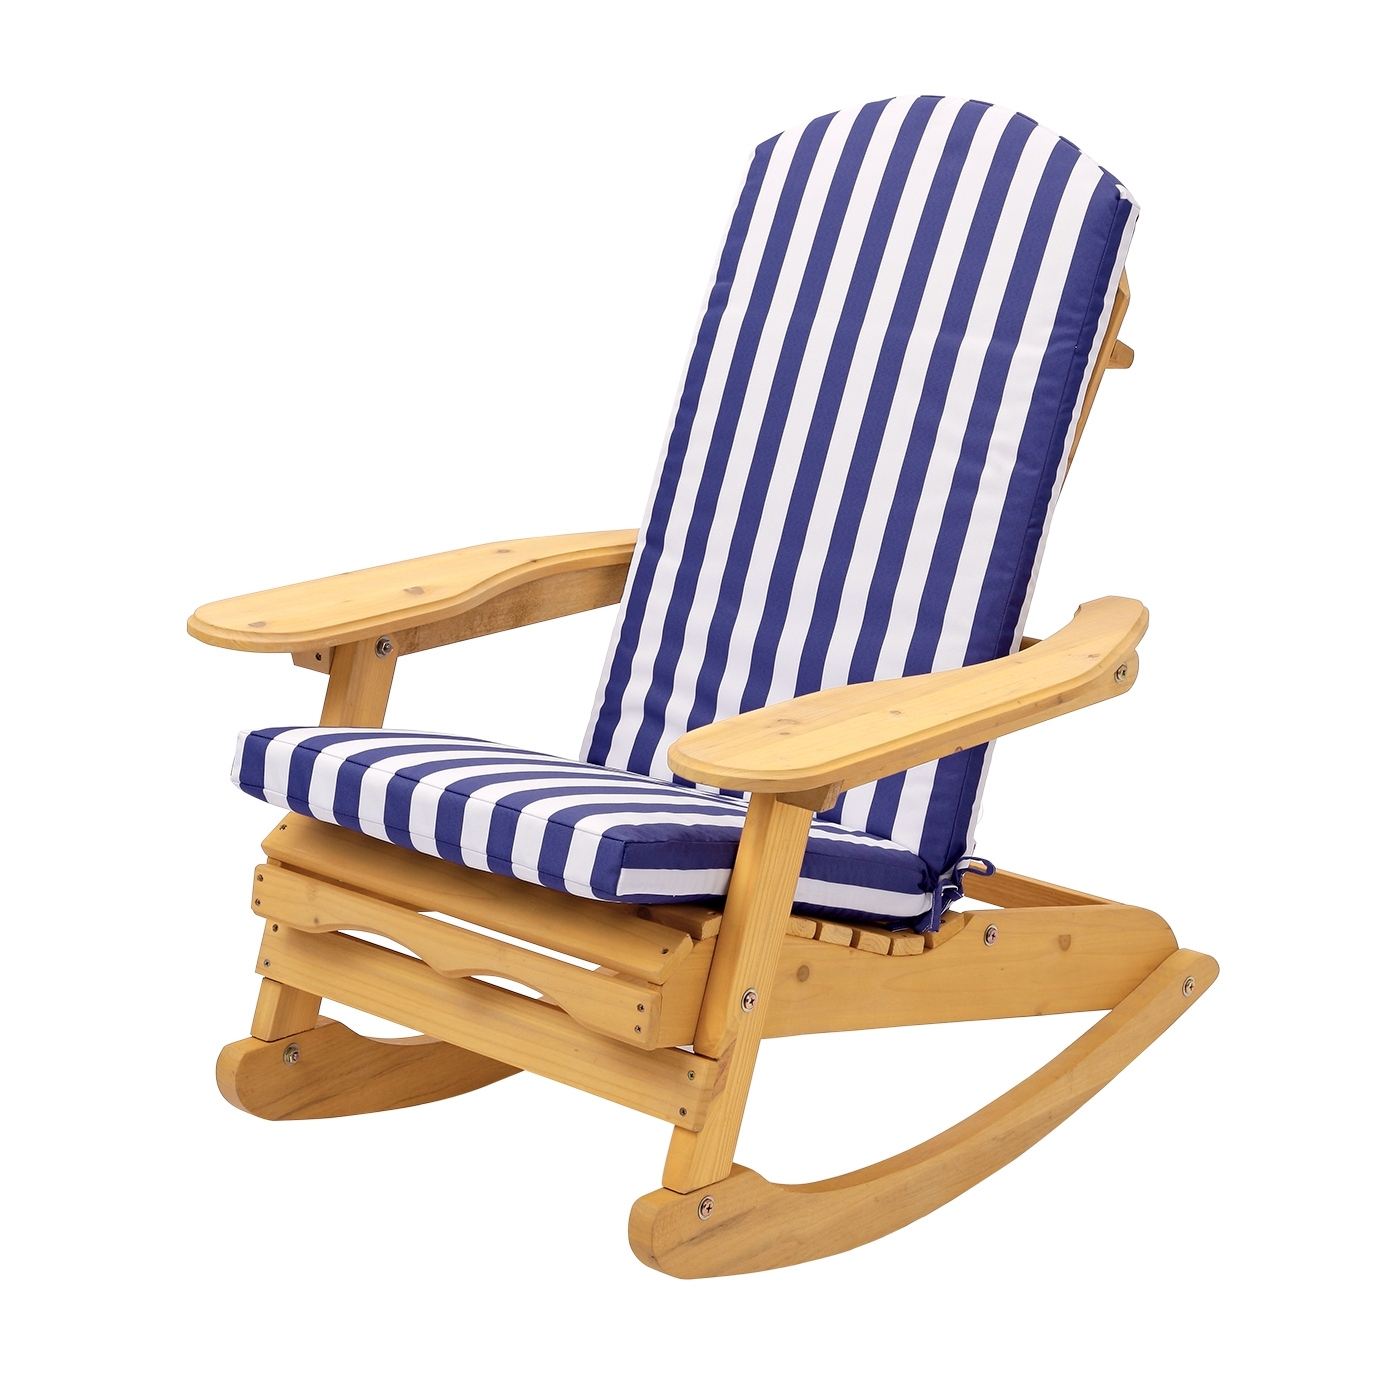 Rocking Chairs For Garden Pertaining To Newest Garden Patio Rocking Chair With Blue & White Striped Cushion (View 12 of 20)